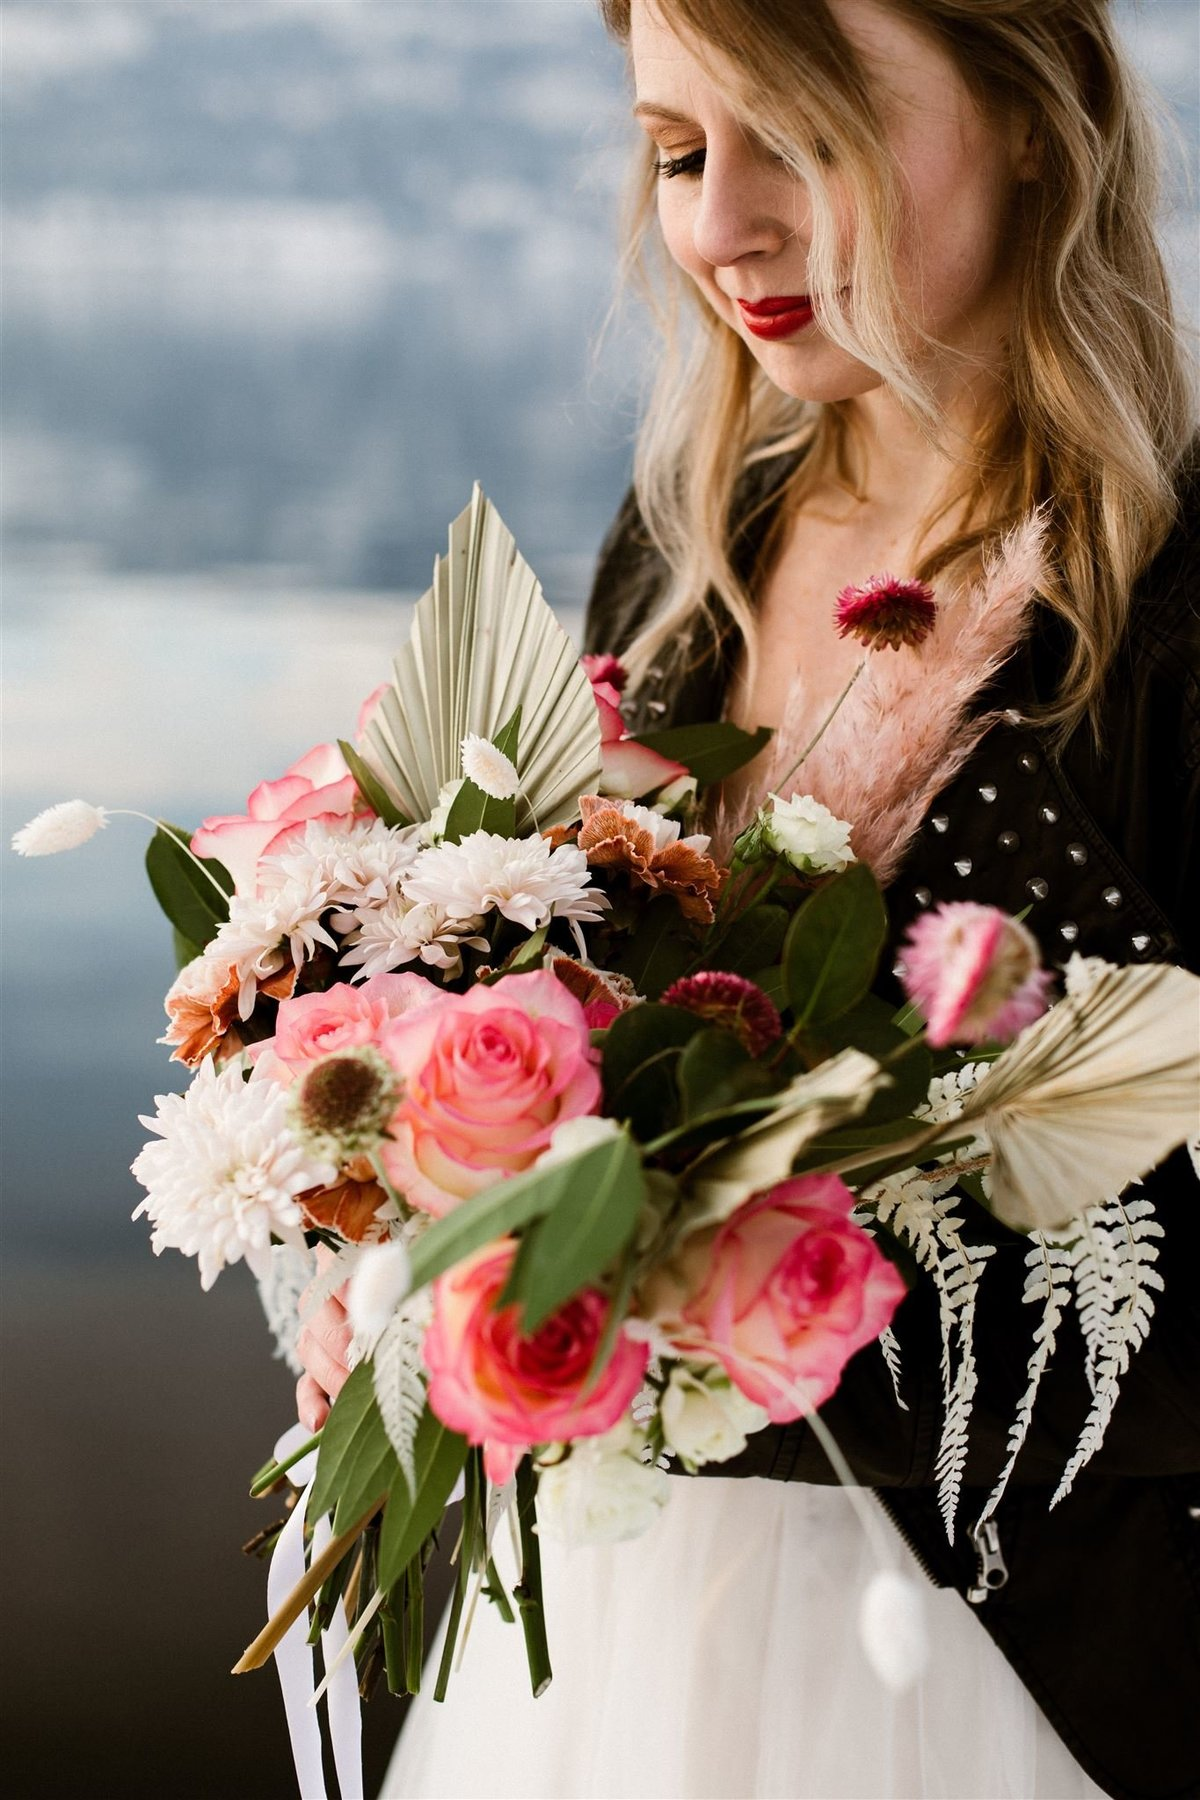 nikki and adam_downtown kelowna city urban chic and waterfront lake styled elopement_fleurich creations_hair by mar_ melanie feeny_danika lee photography_01202019-82_websize